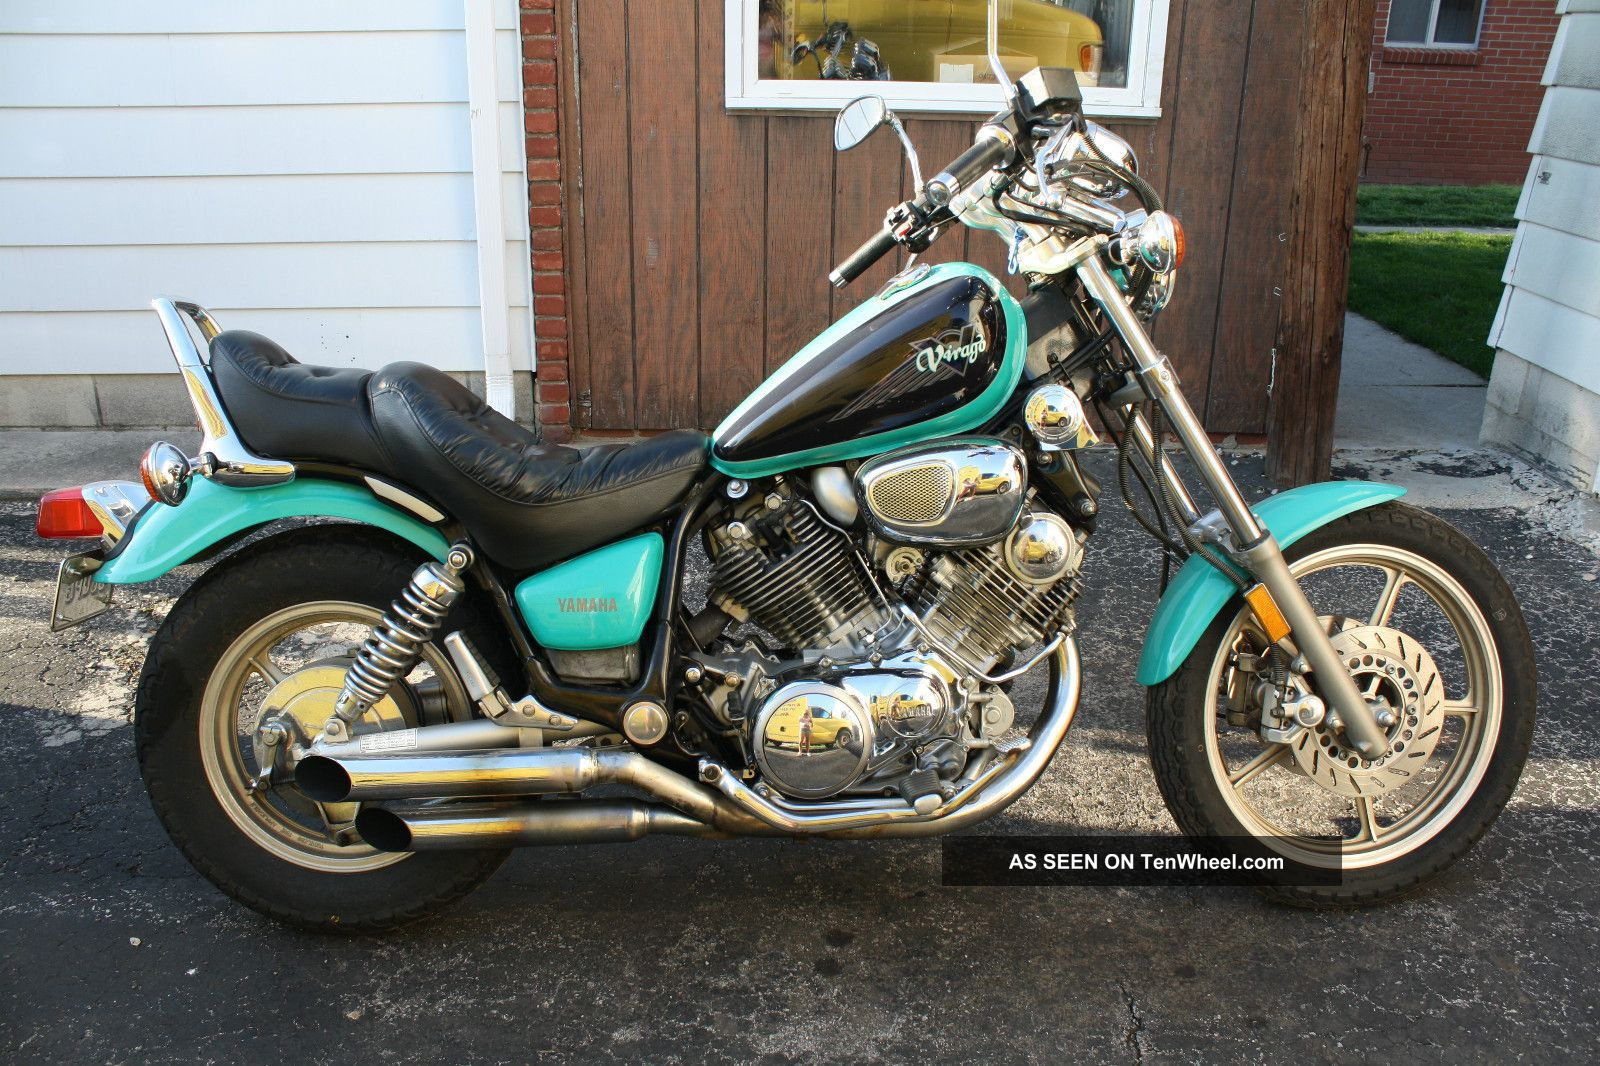 1995 yamaha virago 750 custom pipes lots of chrome. Black Bedroom Furniture Sets. Home Design Ideas